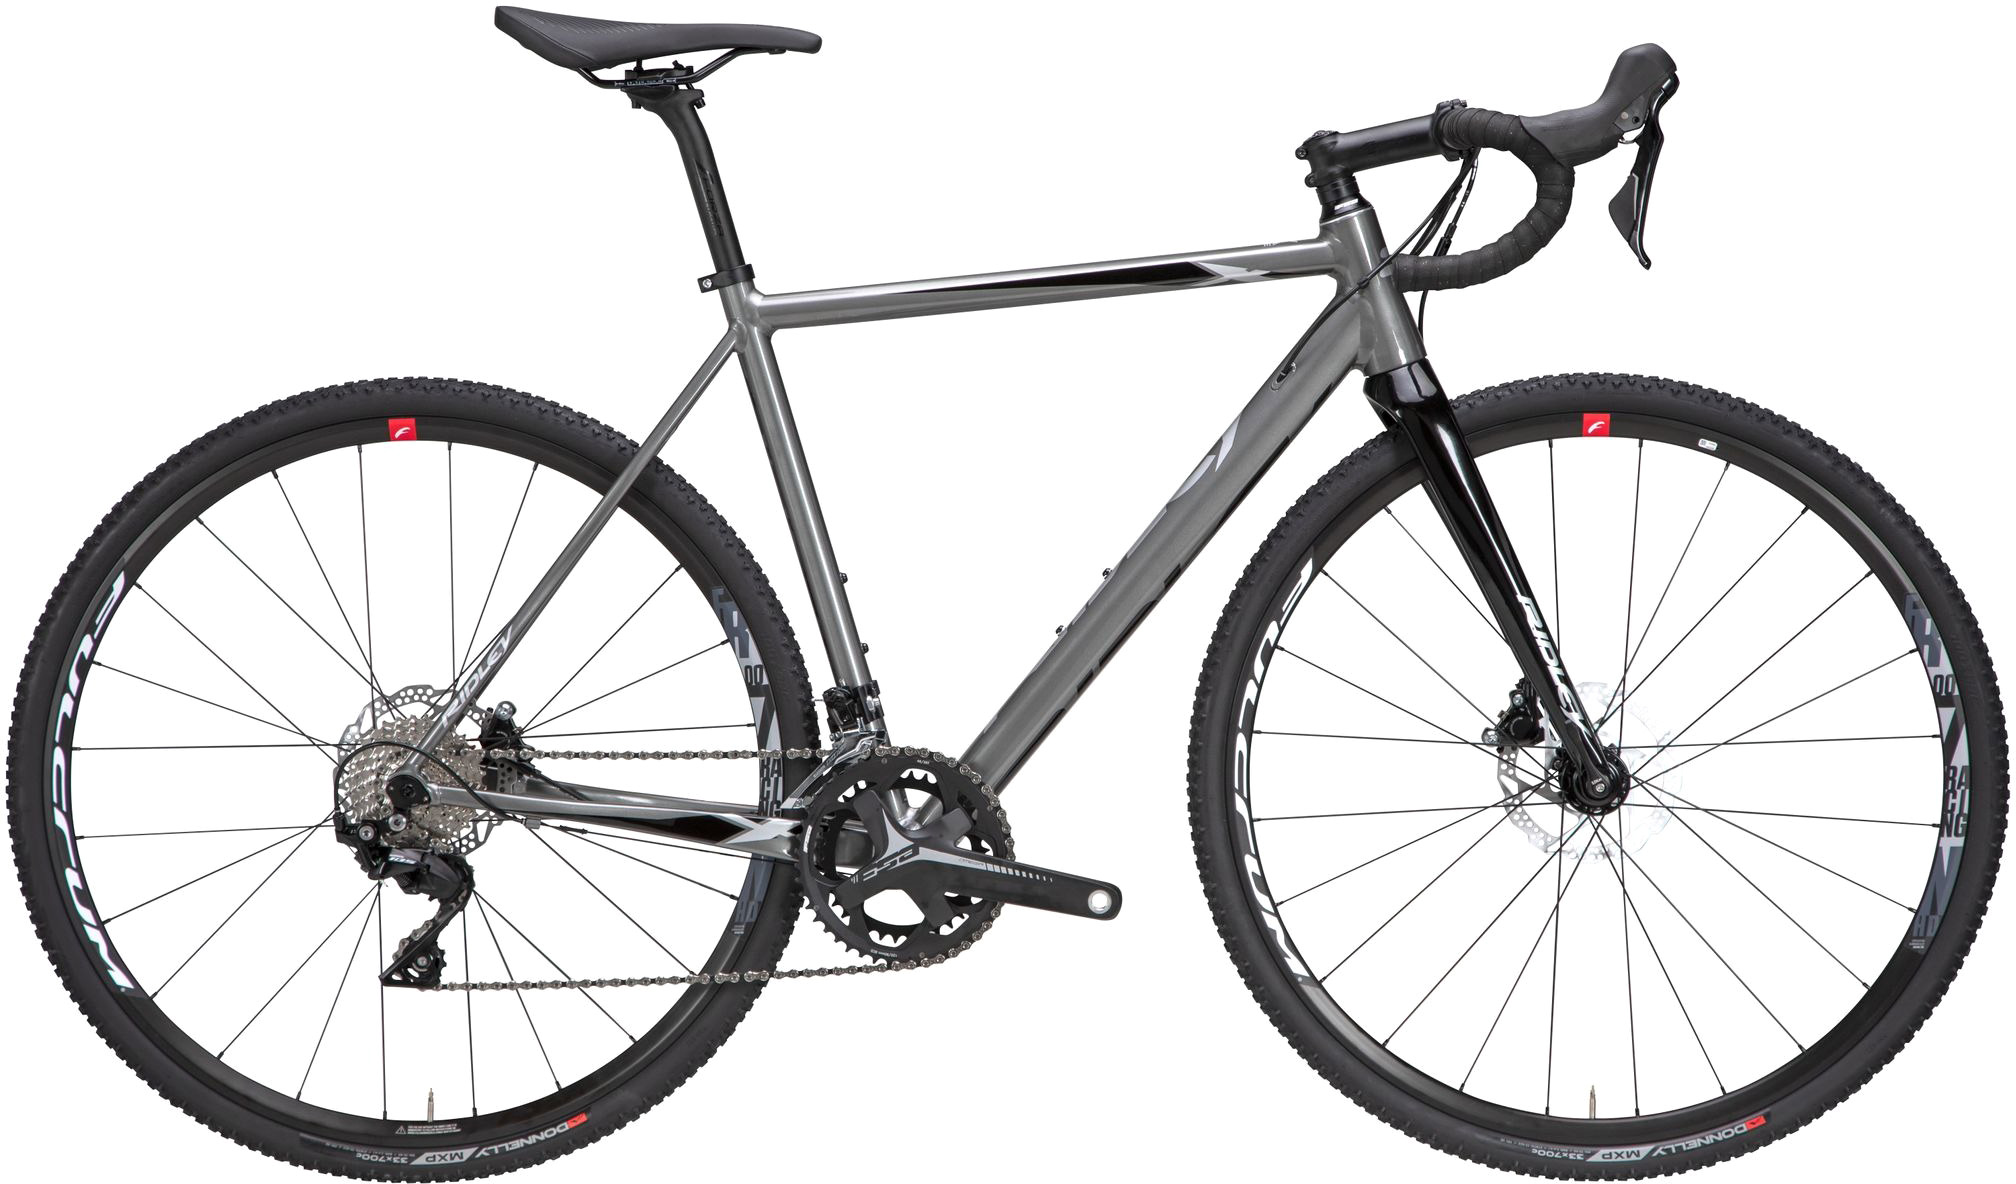 Wiggle Com Ridley X Ride Disc Cyclocross Bike 2020 Cyclocross Bikes